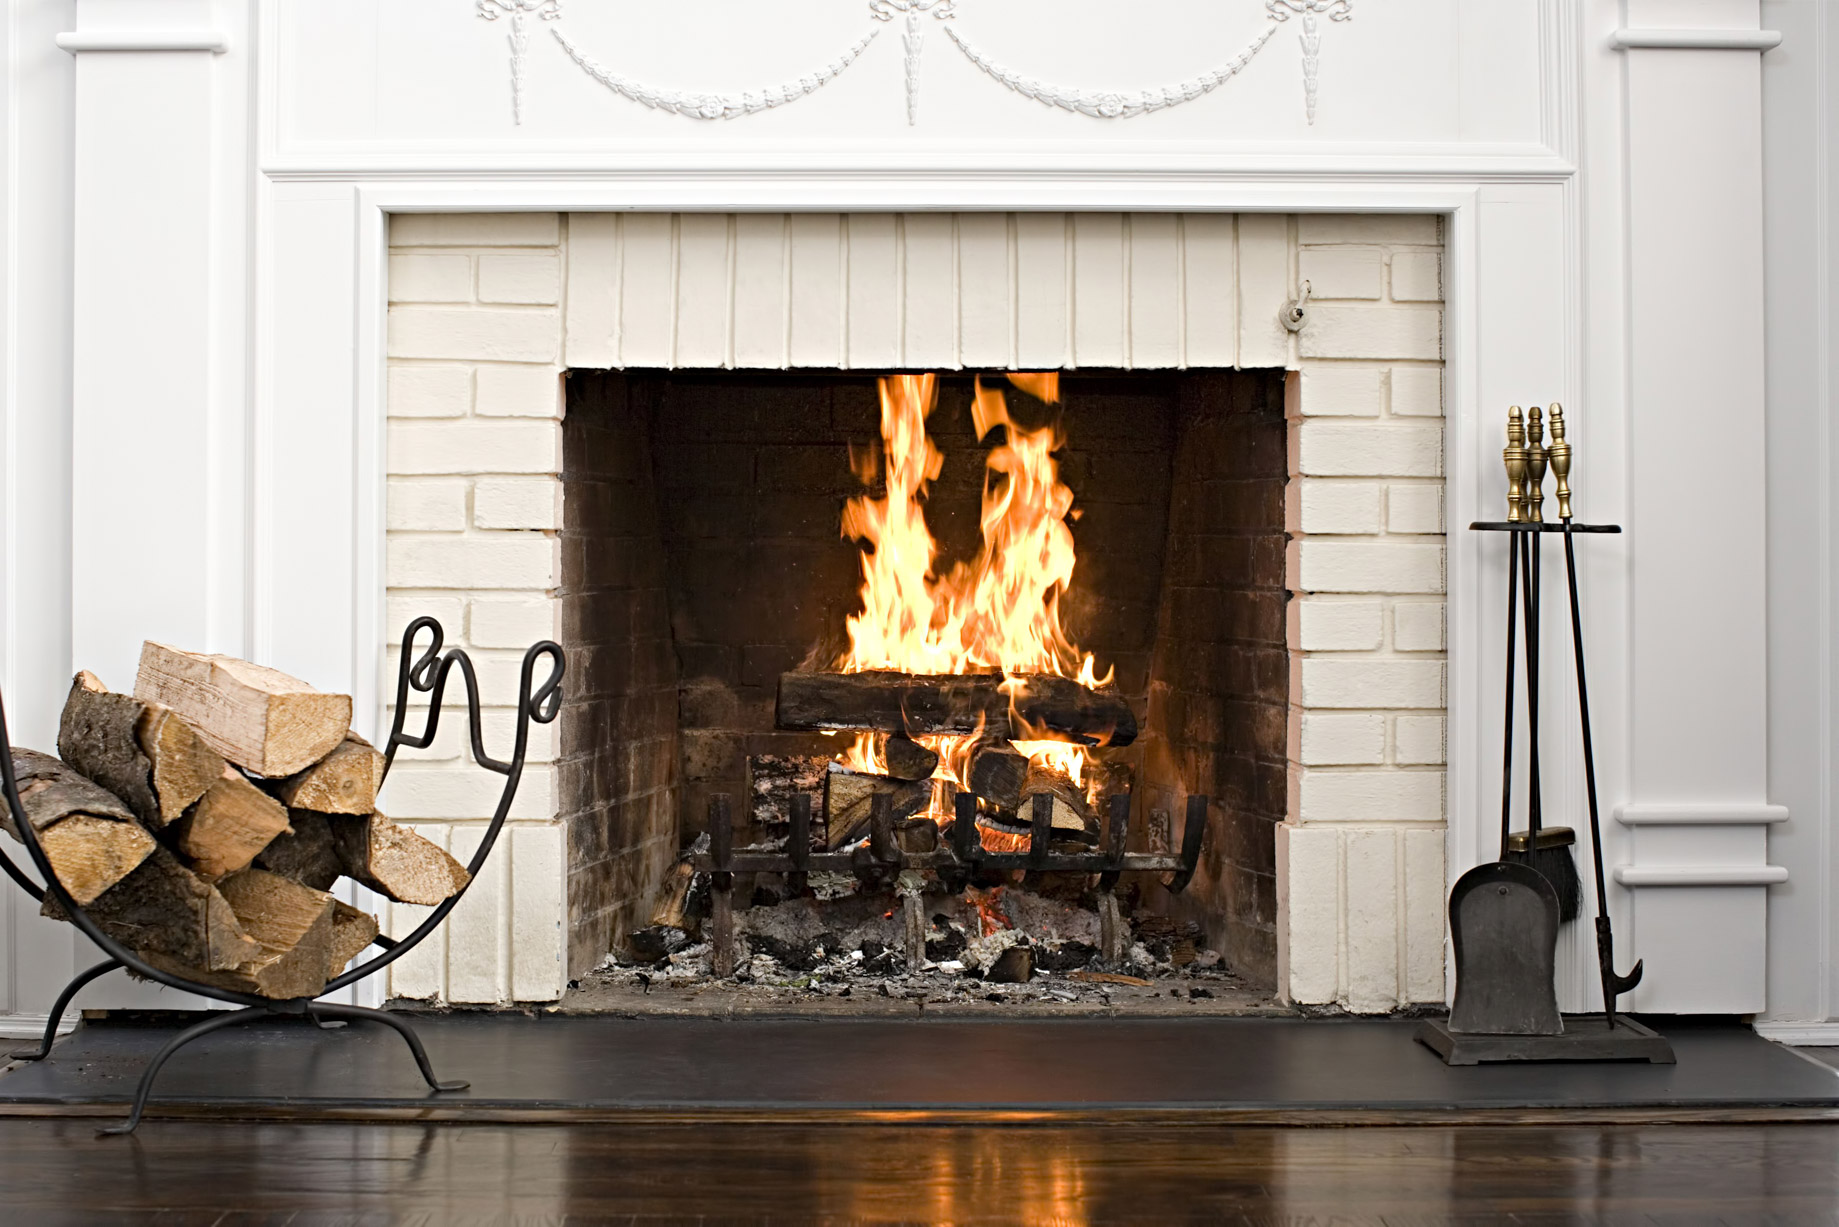 Wood Burning Fireplace - Home Renovation Tips - Fireplace Upgrade and Chimney Guide for Homeowners